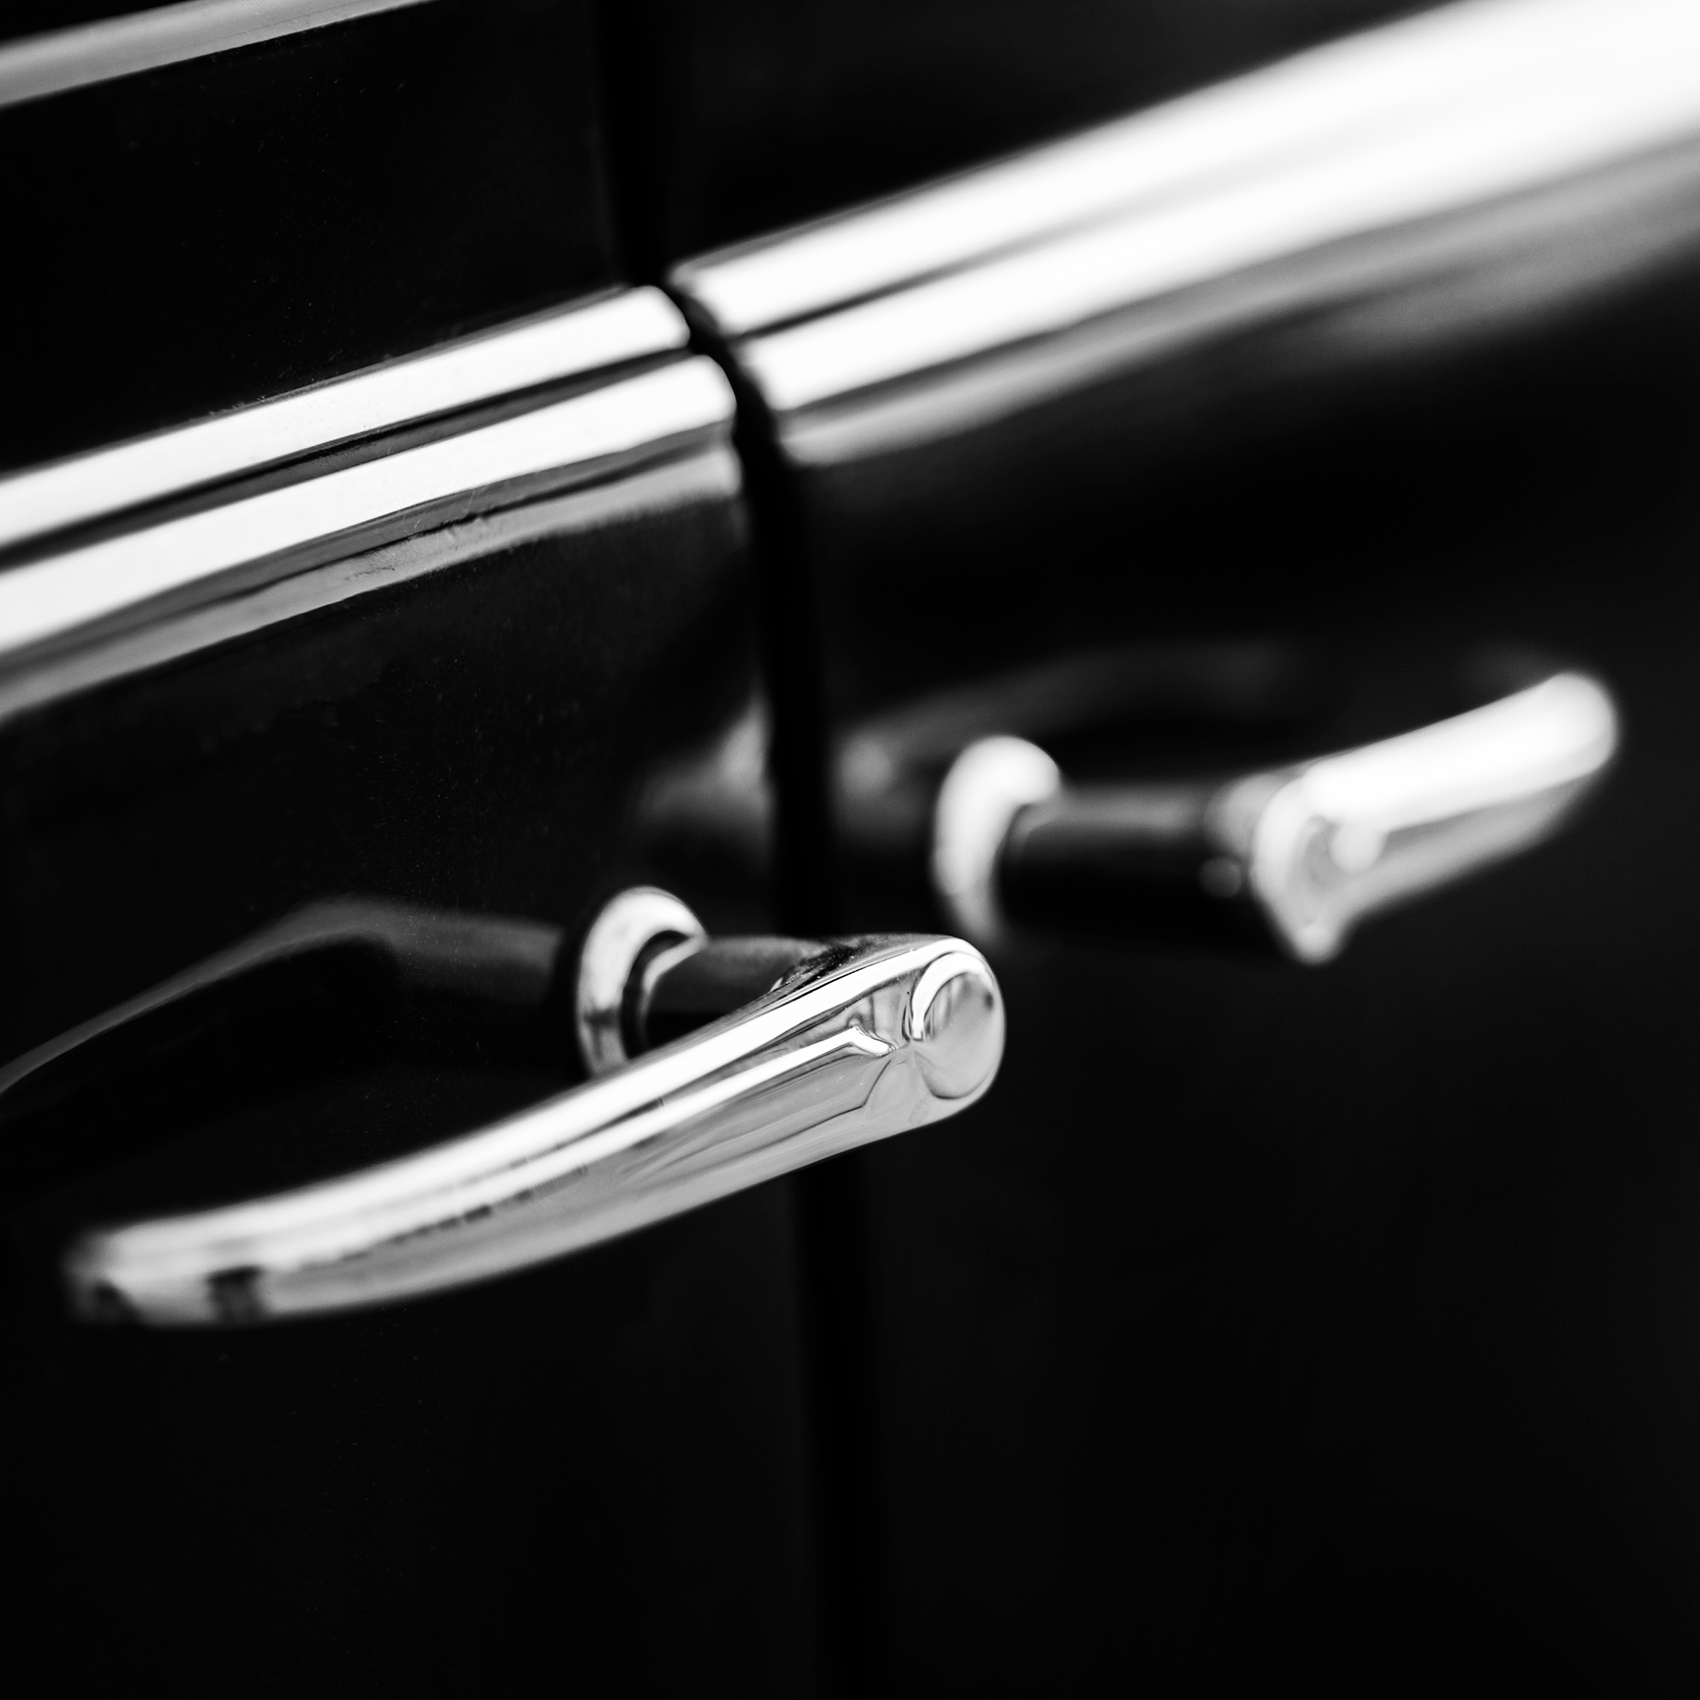 artistic_editorial_image_door_handles_on_1946_oldsmobile_in_toronto